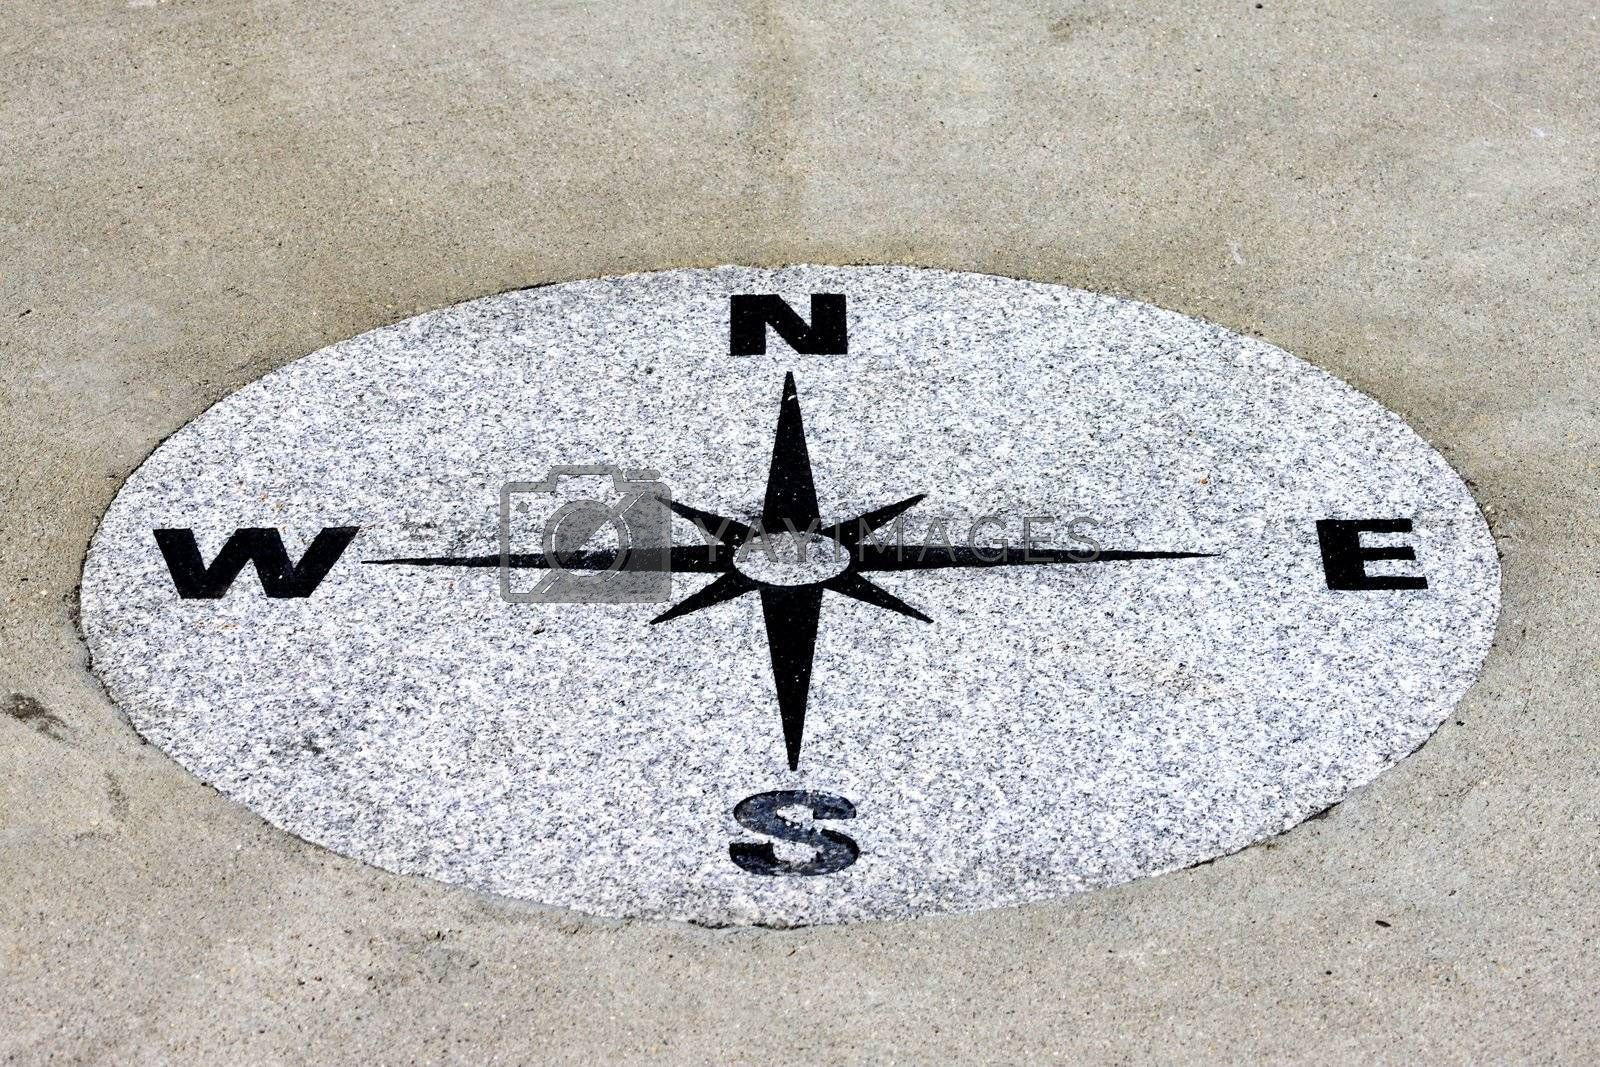 Compass found on a sidewalk on a granit background